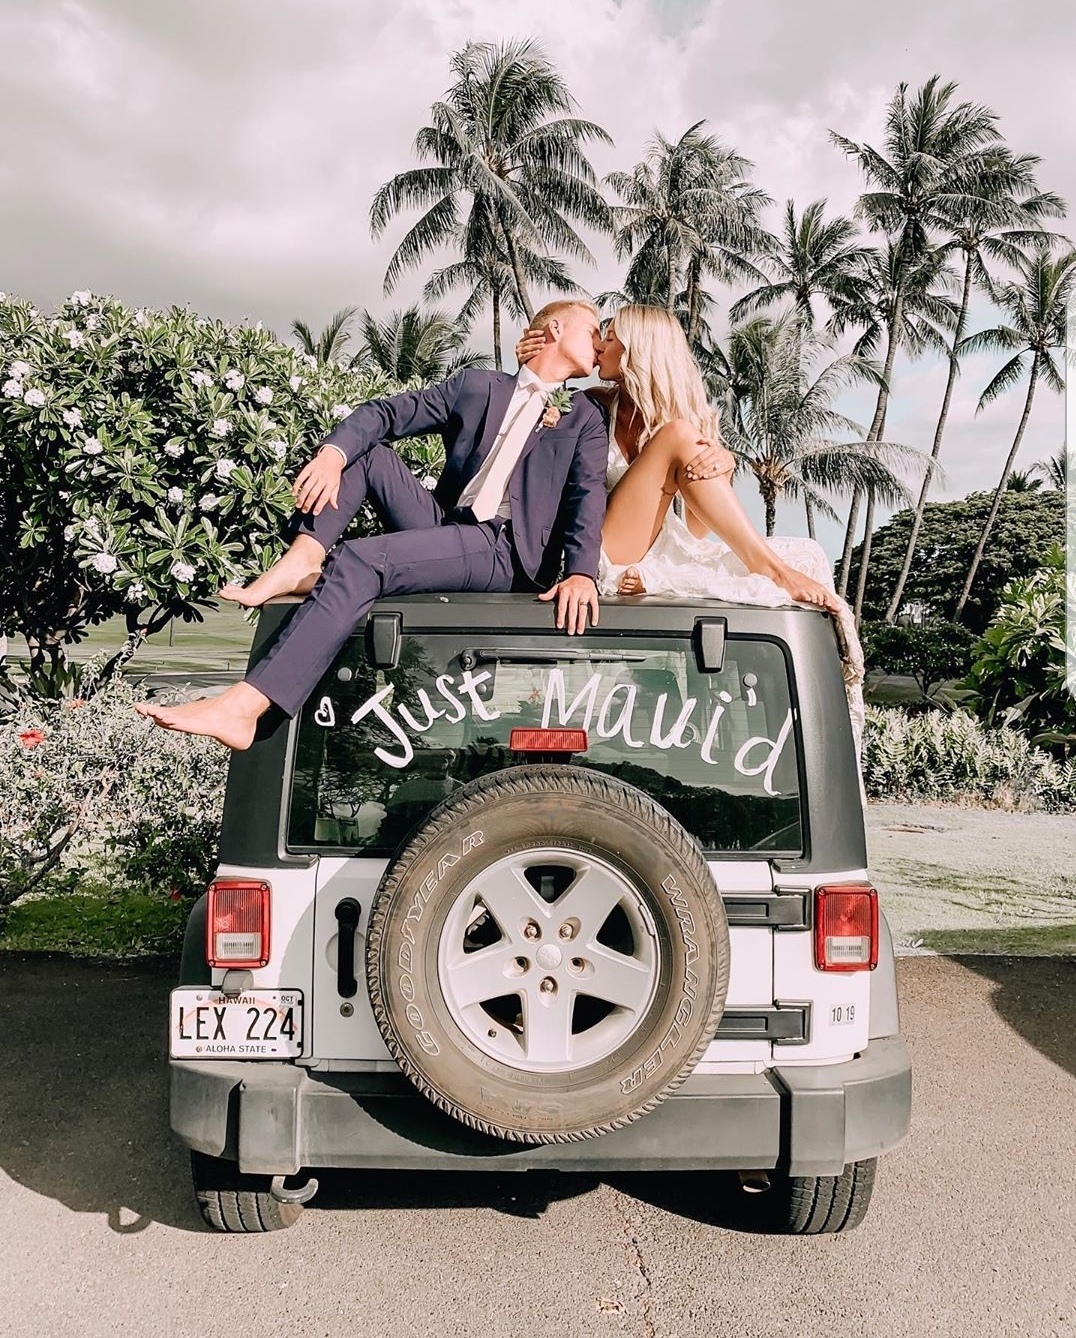 Budget-Friendly Rides with Amazing Service - There's nothing worse than planning your dream destination wedding and scoring every perfect vendor within your budget, only to realize you completely forgot about the unsavory process of booking a rental car. That's why we recommend all of our Hawaii brides get in touch with Kihei Rent a Car, a family-run rental service that offers high-quality rides at cost-efficient rates. They offer wedding party discounts, free additional drivers, and never add on fees for high mileage or under-25 renters. We love supporting local businesses like Kihei Rent a Car, and trust them to transport all our well travelled brides across the Hawaii islands!Visit WebsiteMaui, HawaiiPhone: 1 808 879 7257Email: info@kiheirentacar.com